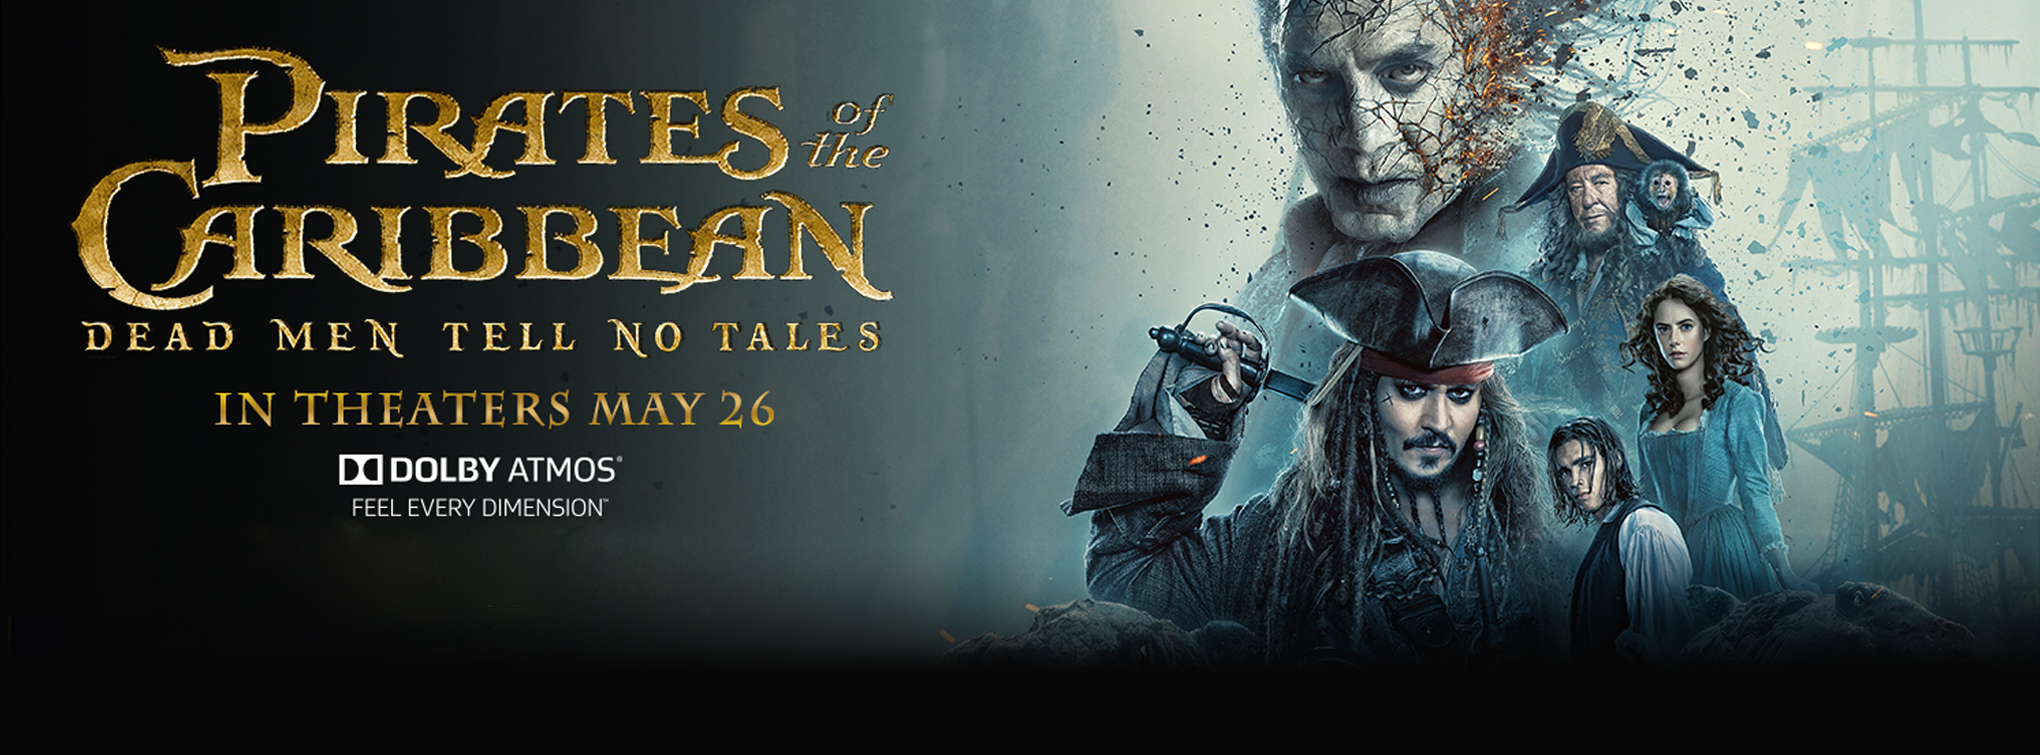 Pirates of the Caribbean: Dead Men Tell No Tales premieres most locations Thursday, May 25!